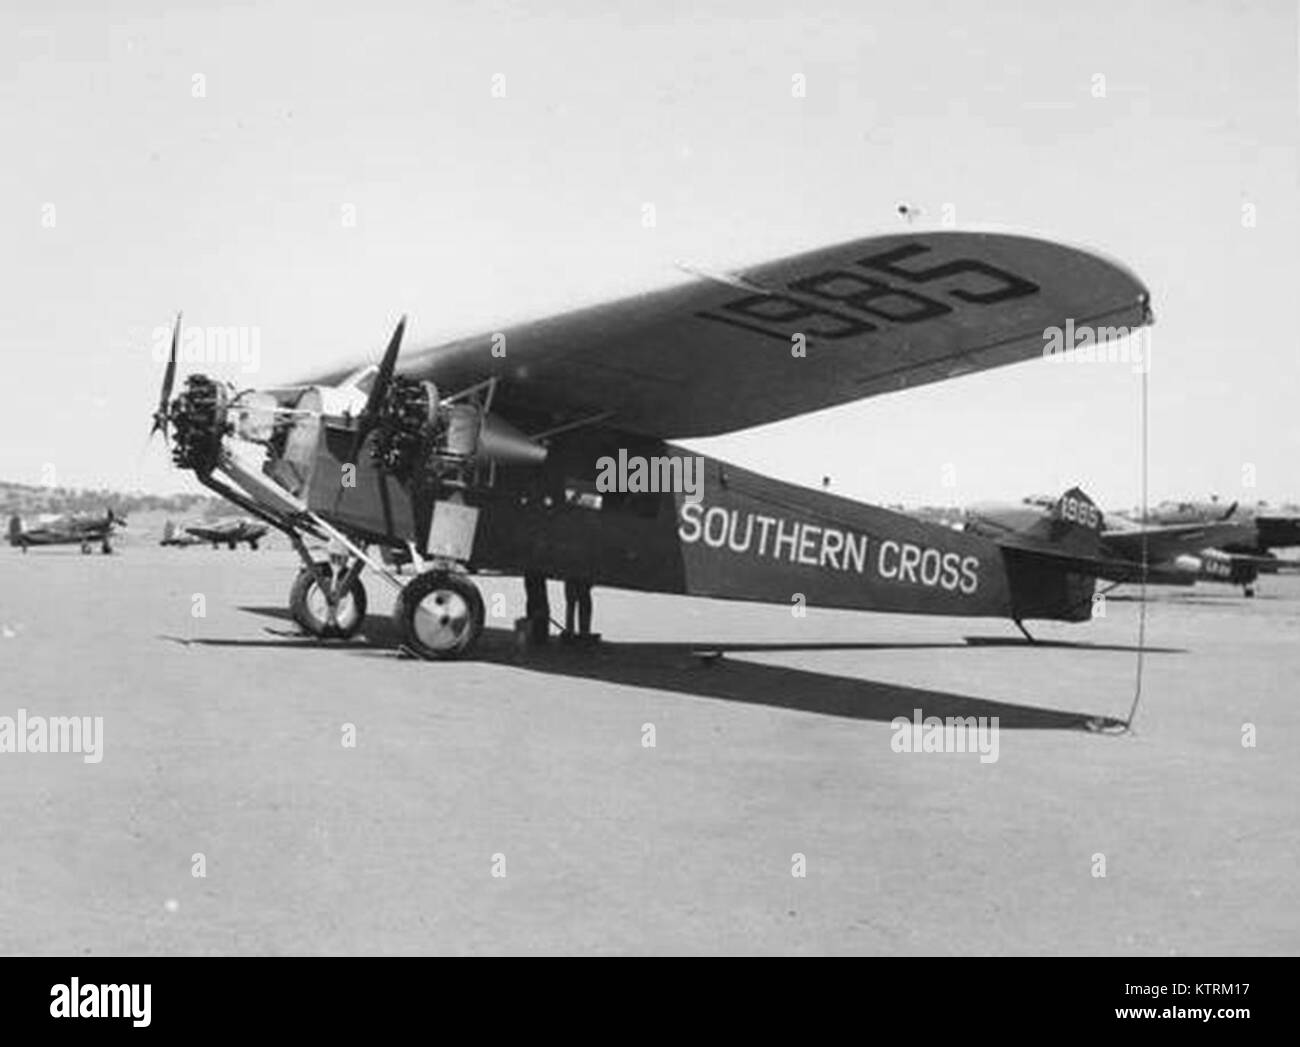 Southern Cross plane, Fokker F.VII/3m monoplane named Southern Cross, 1928, Kingsford Smith and Charles Ulm, Fokker - Stock Image